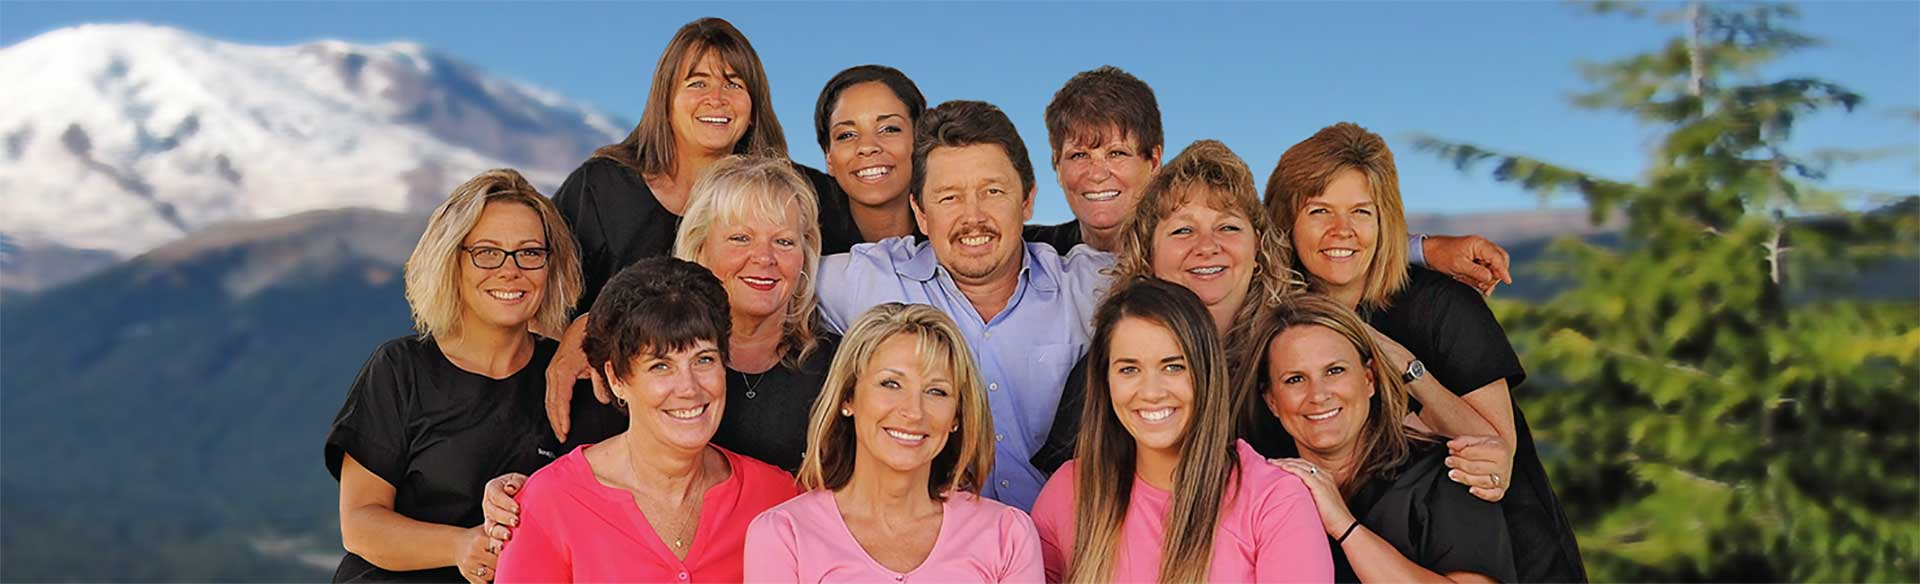 portrait of Dr. Irwin and team at Vancouver Orthodontic Specialists PLLC